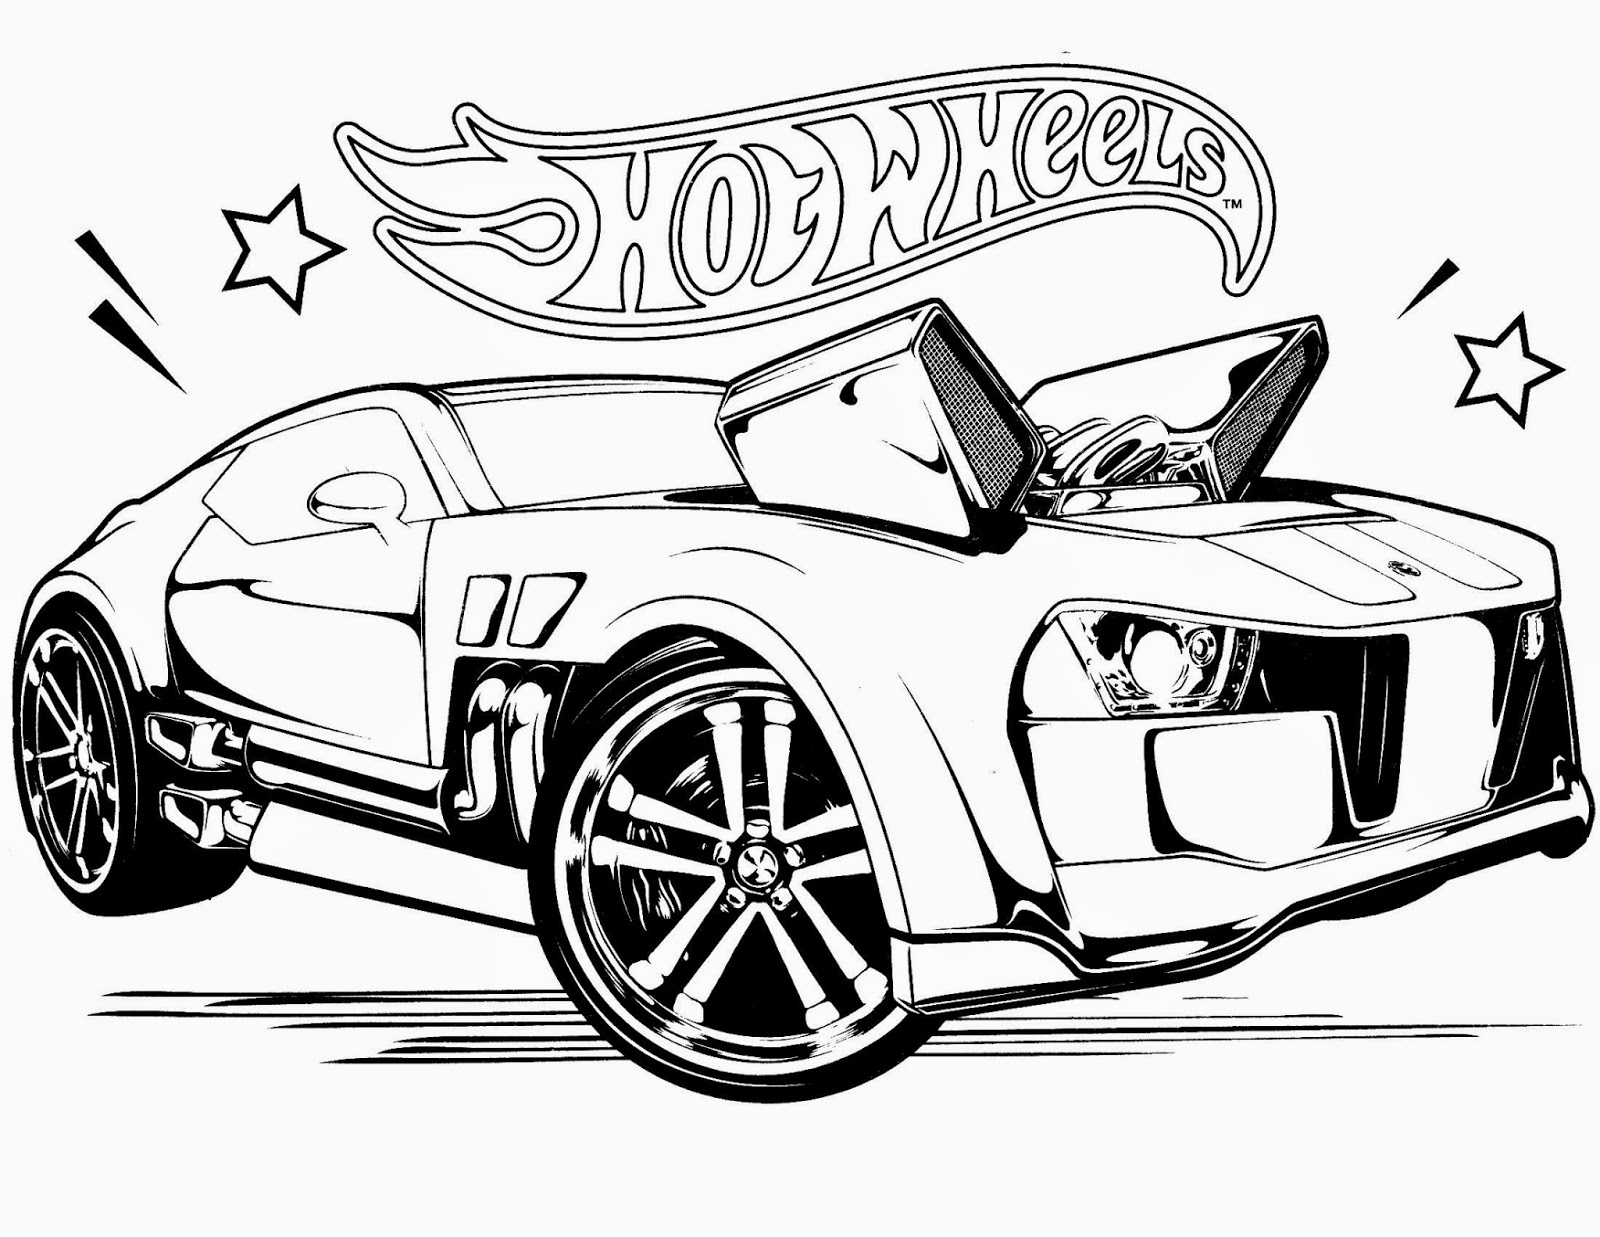 hotwheels coloring pages hot wheels bmw 5 series coloring sheet hotwheels pages coloring